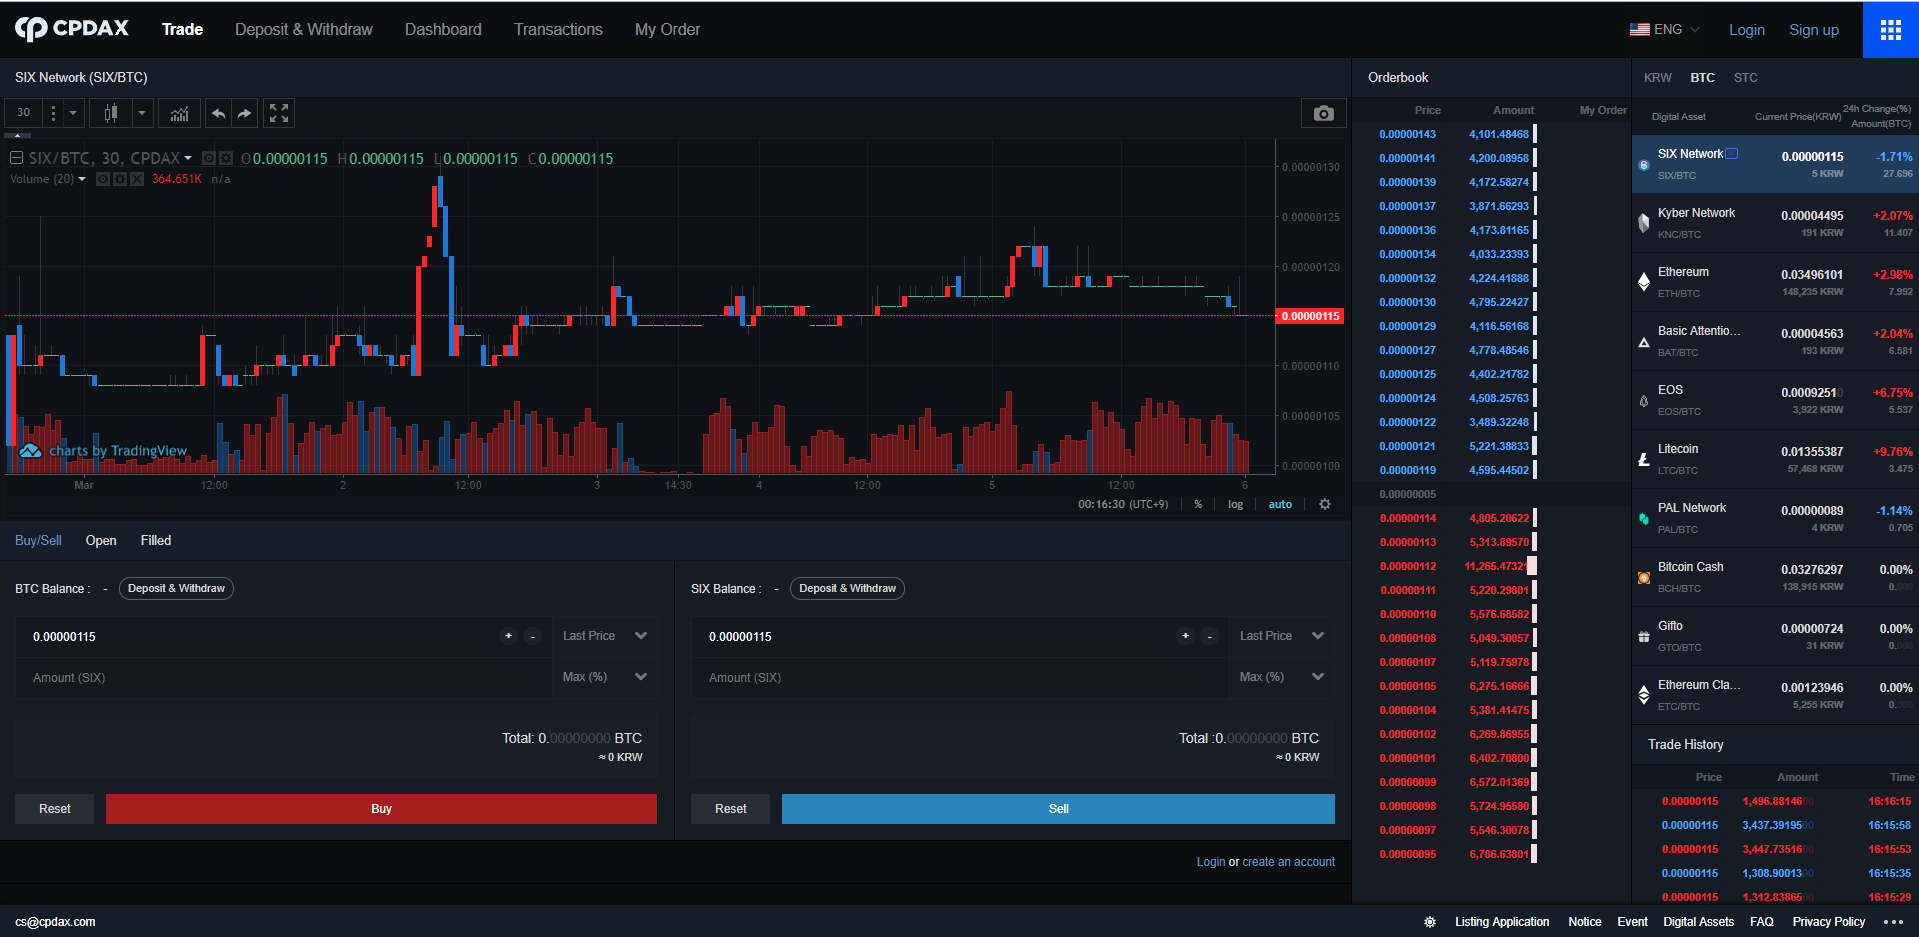 CPDAX Trading View